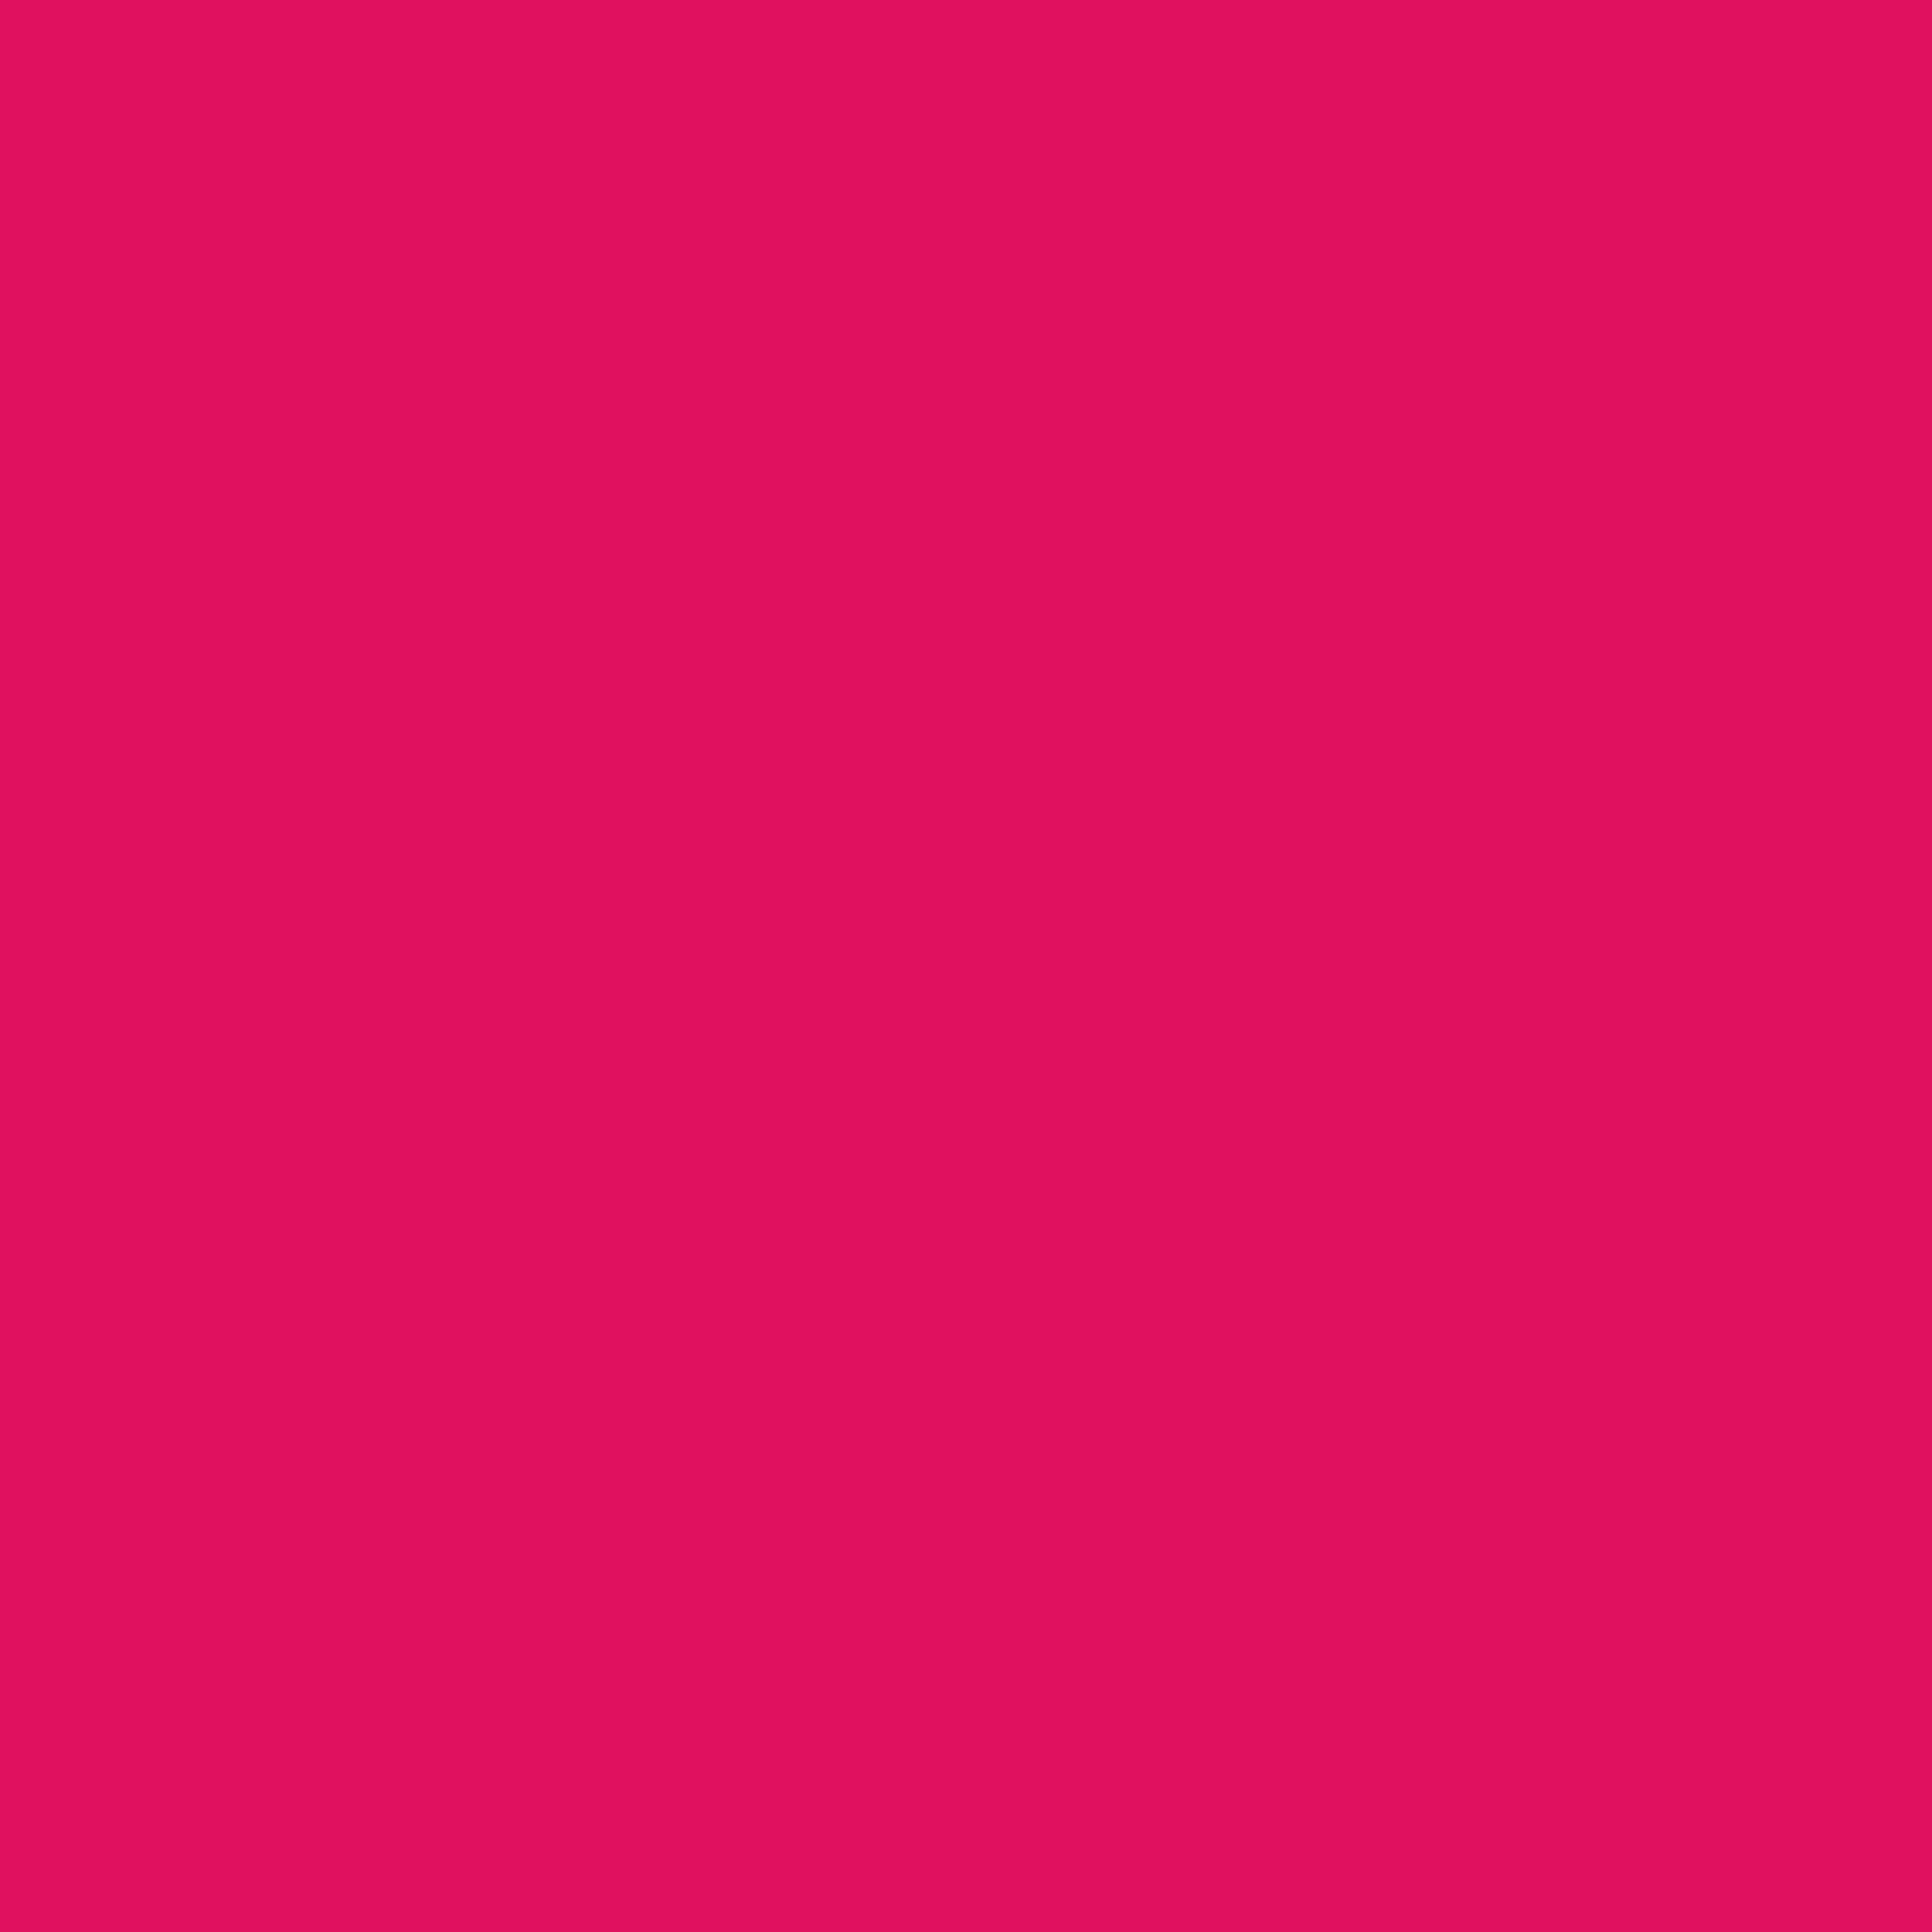 3600x3600 Ruby Solid Color Background